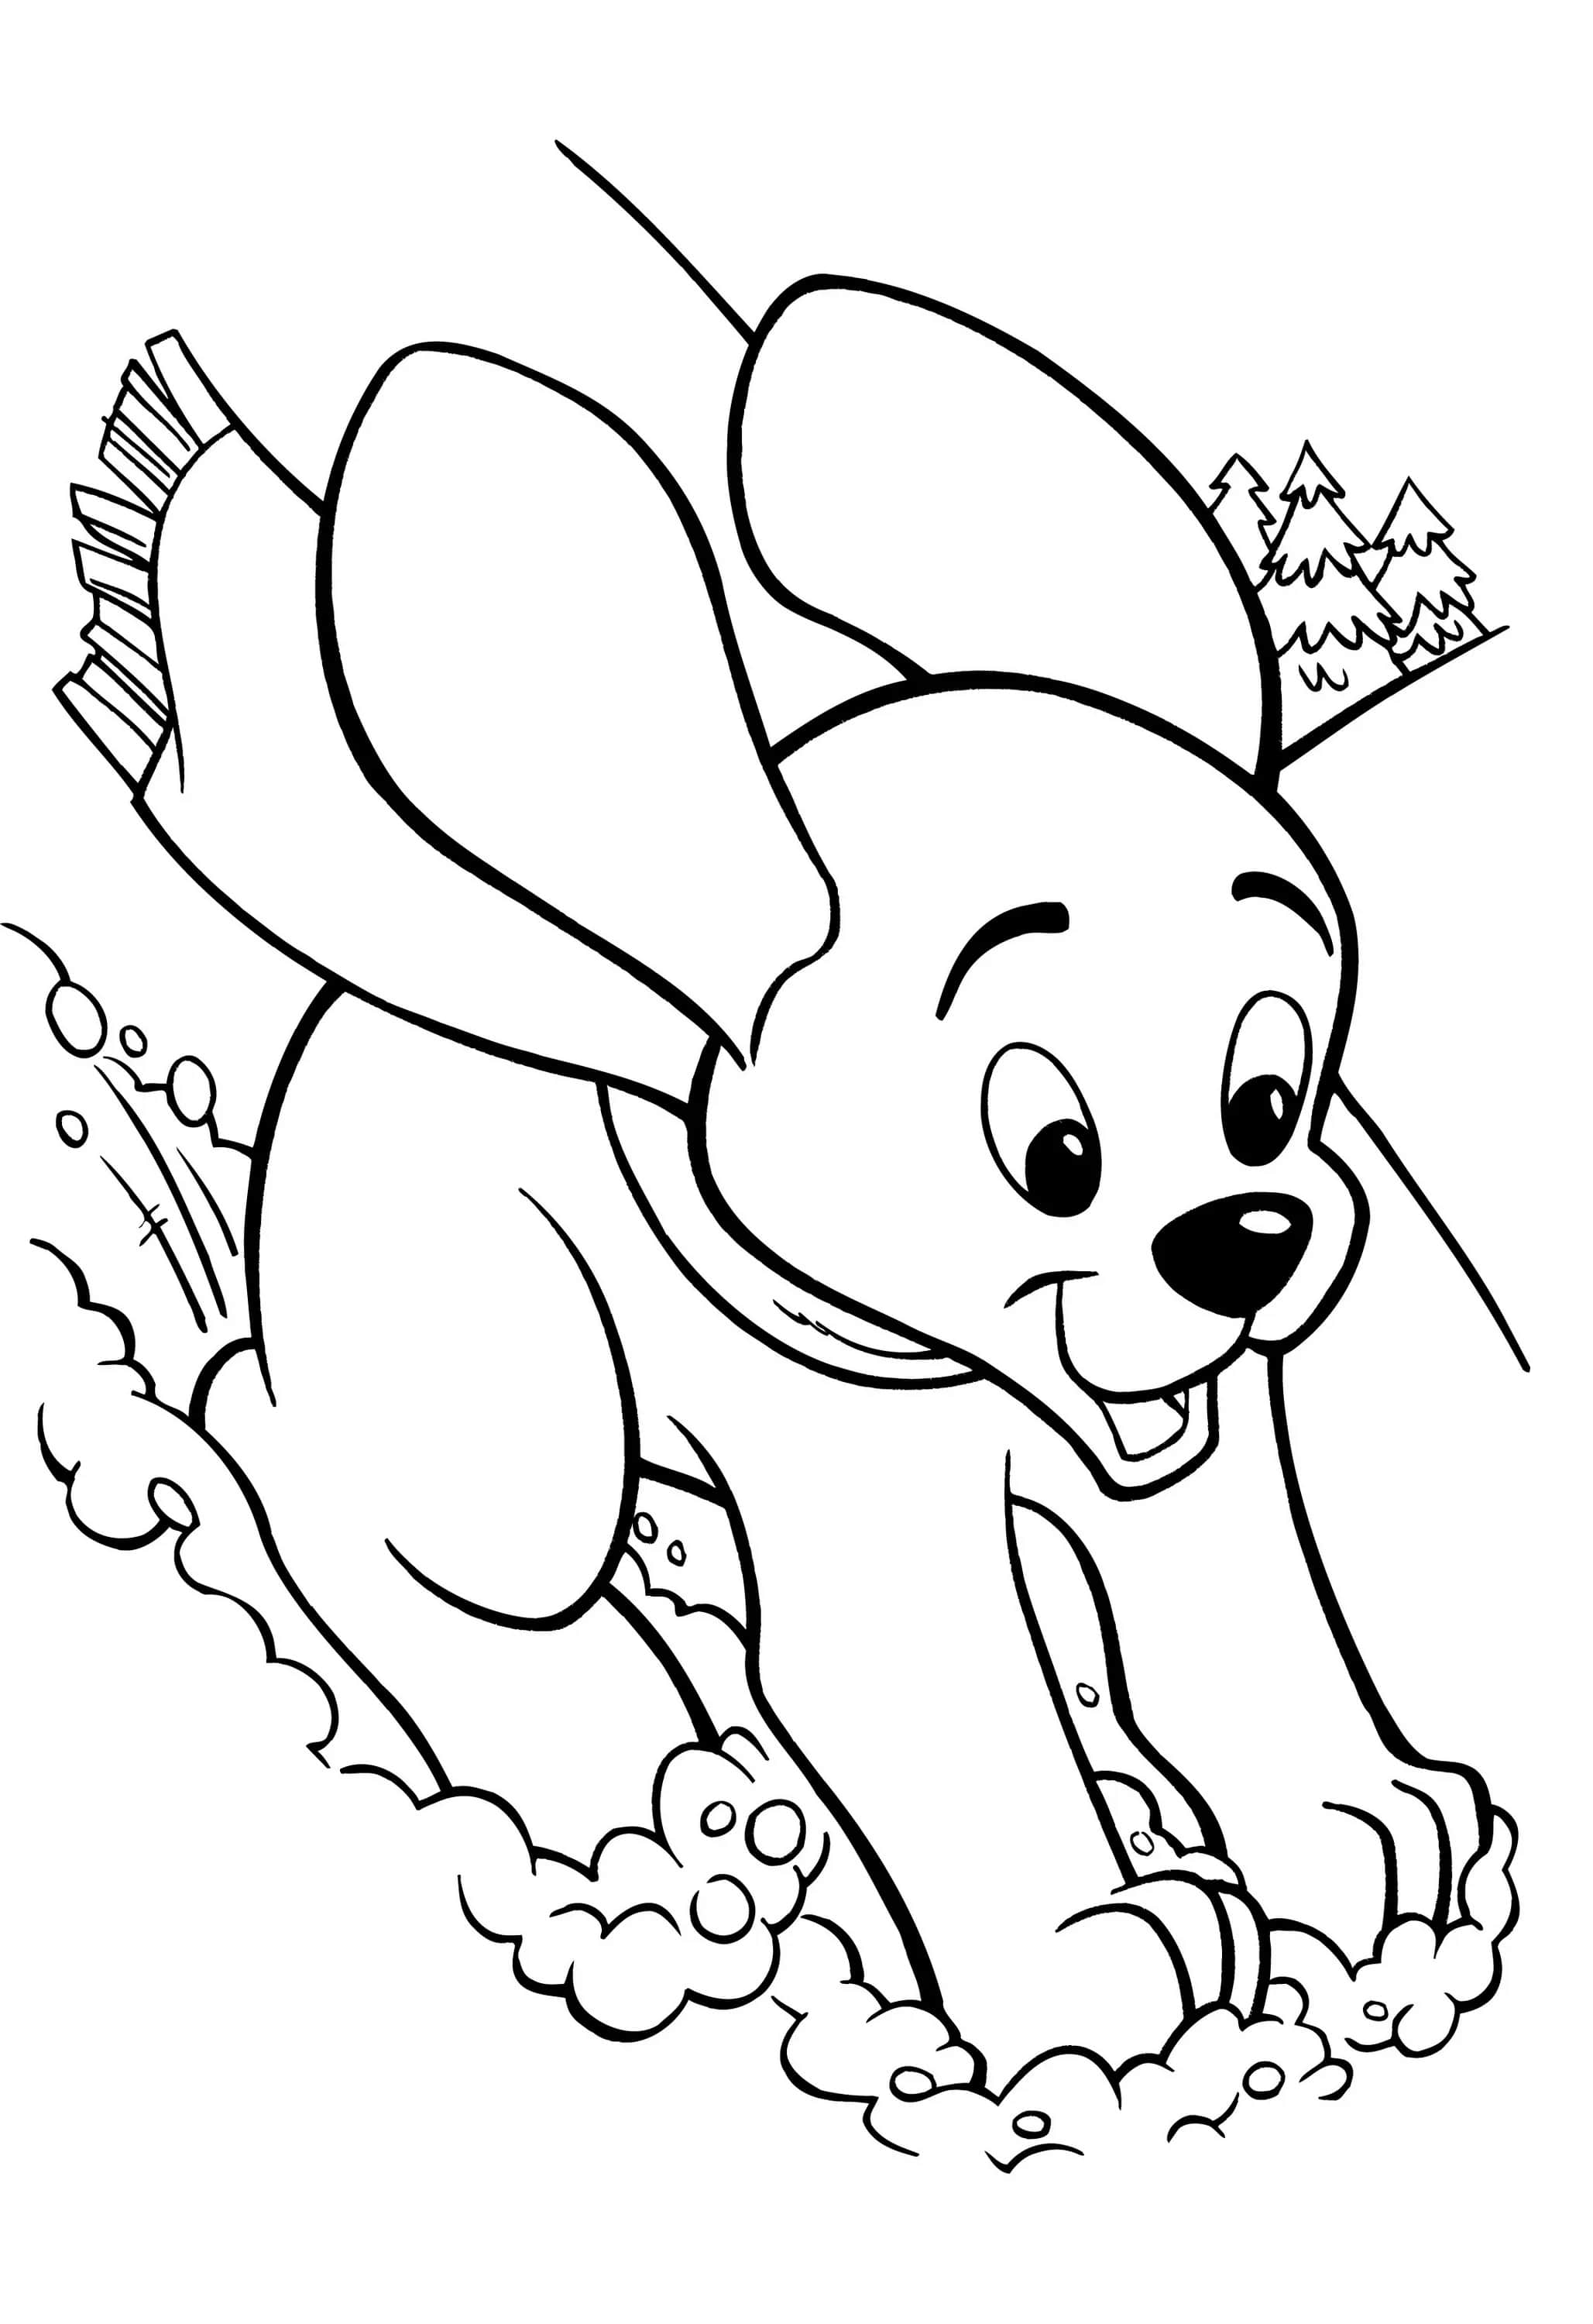 free printable coloring pages of dogs puppy dog pals coloring pages to download and print for free of pages printable dogs coloring free